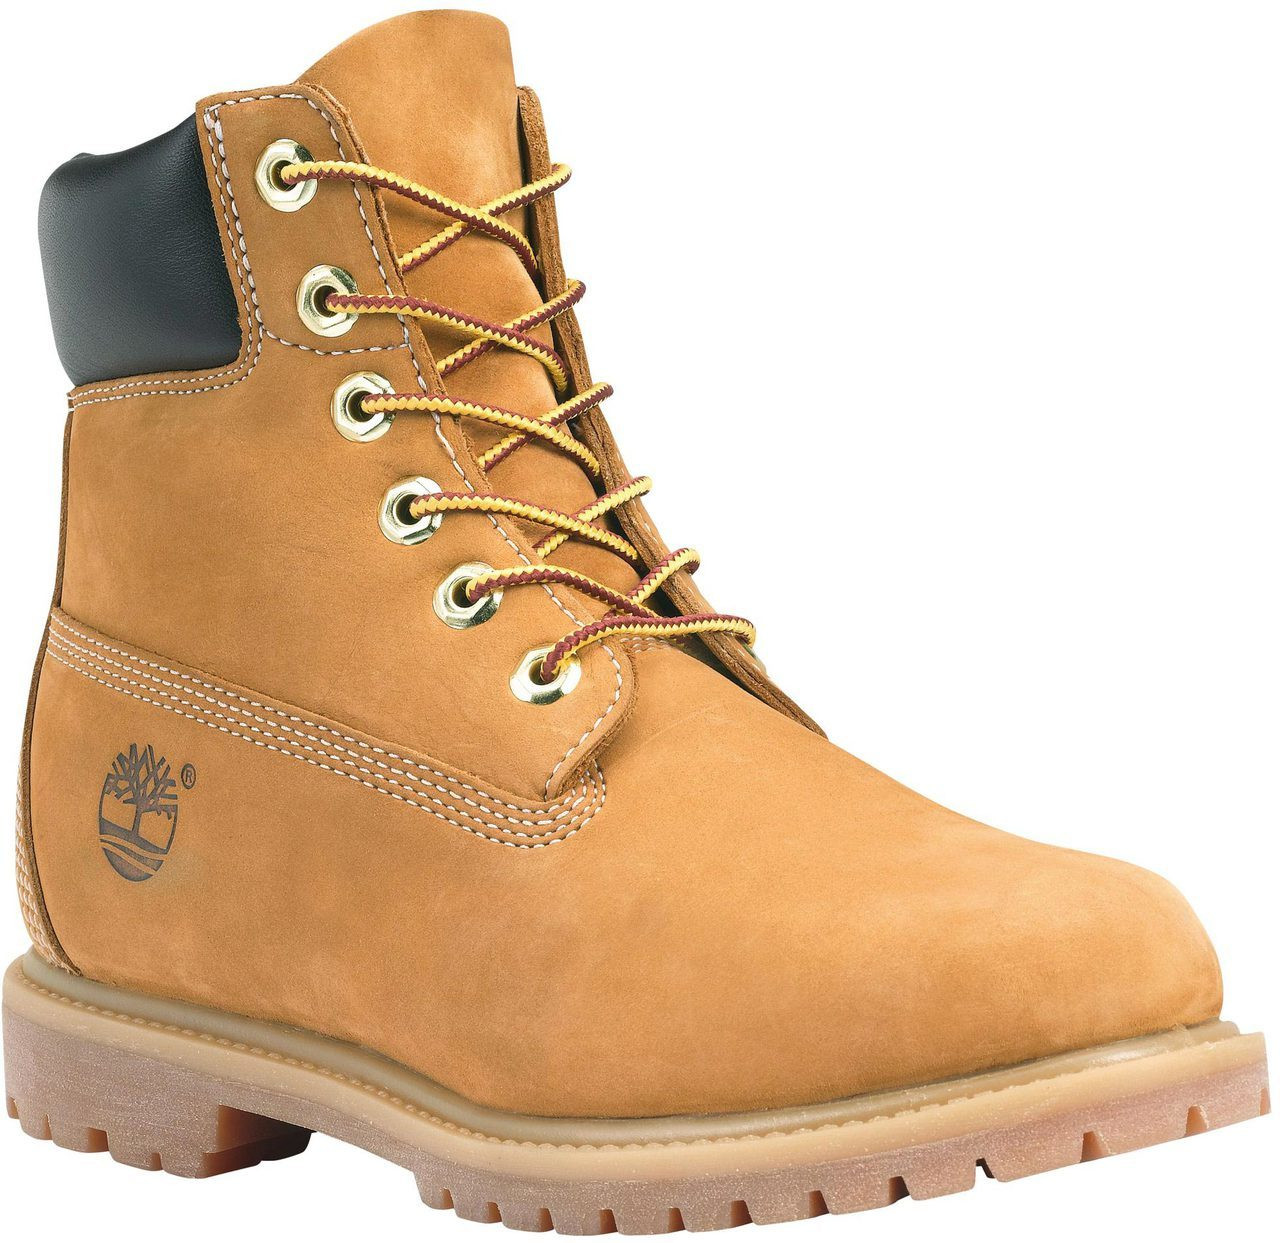 c5a9dd28118 The 3 Must-Have Timberlands - Englin's Fine Footwear